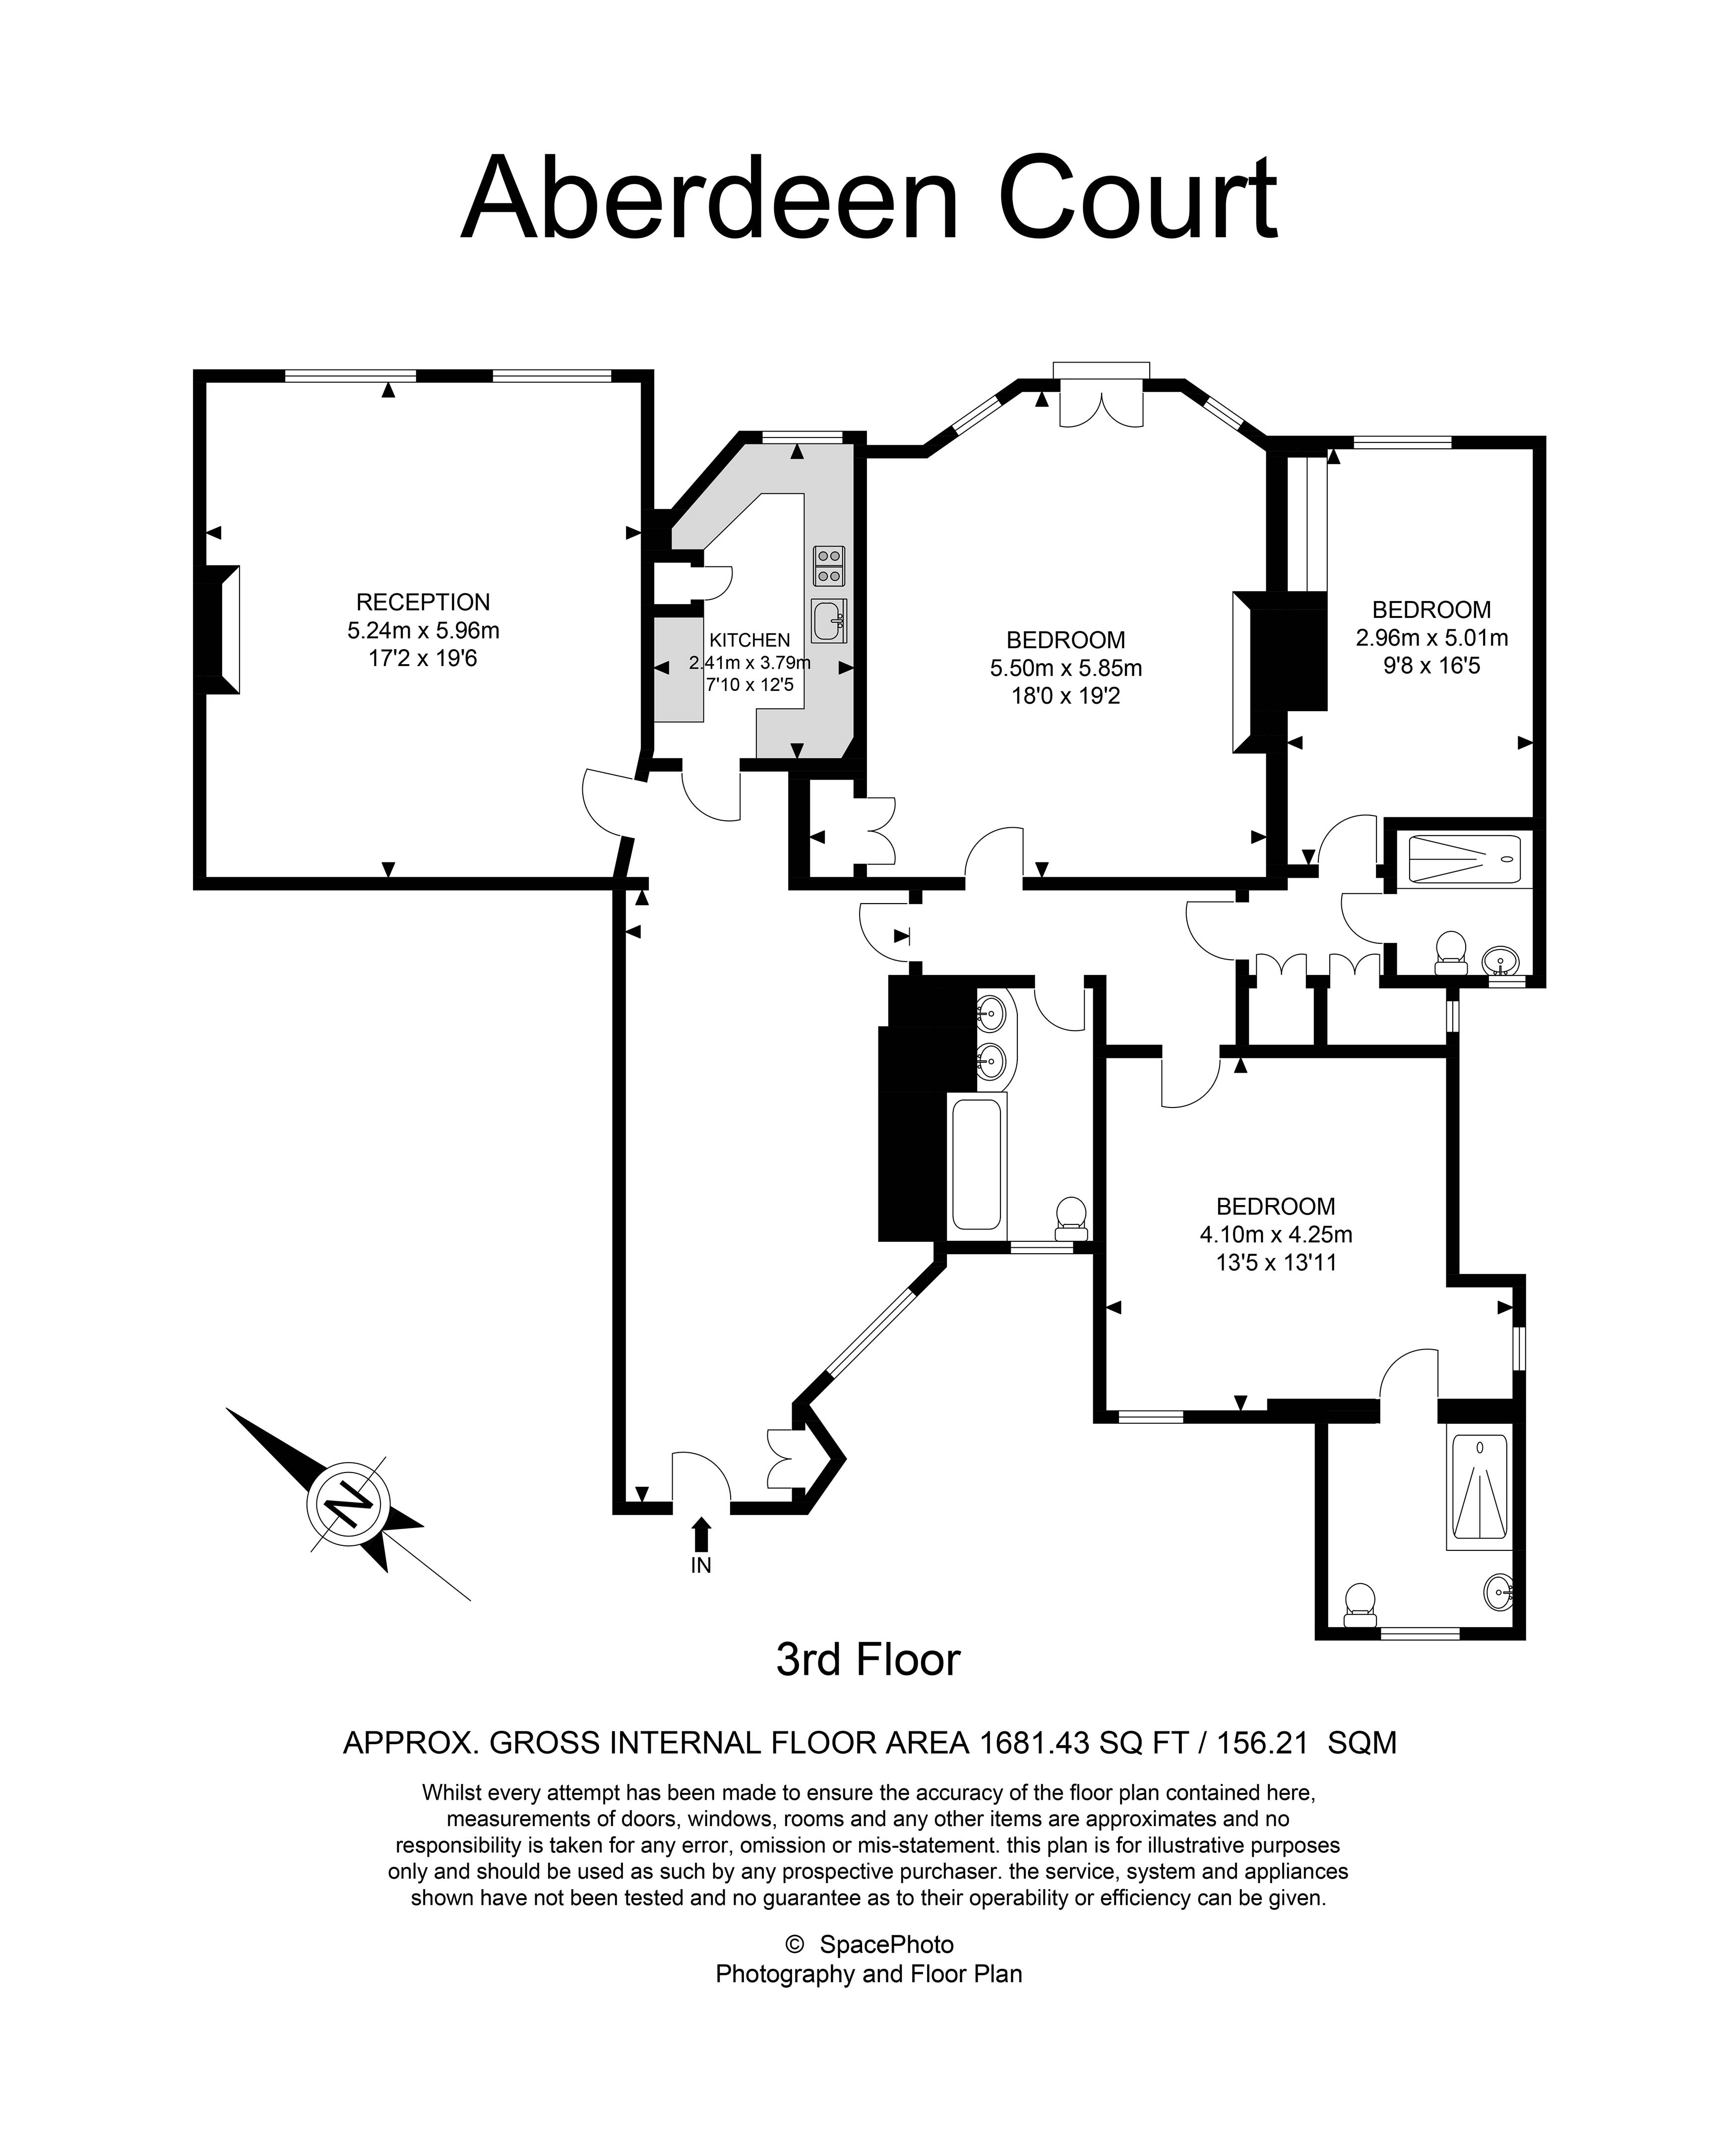 Floor Plan of 3 bedrooms Apartment / Flat for sale